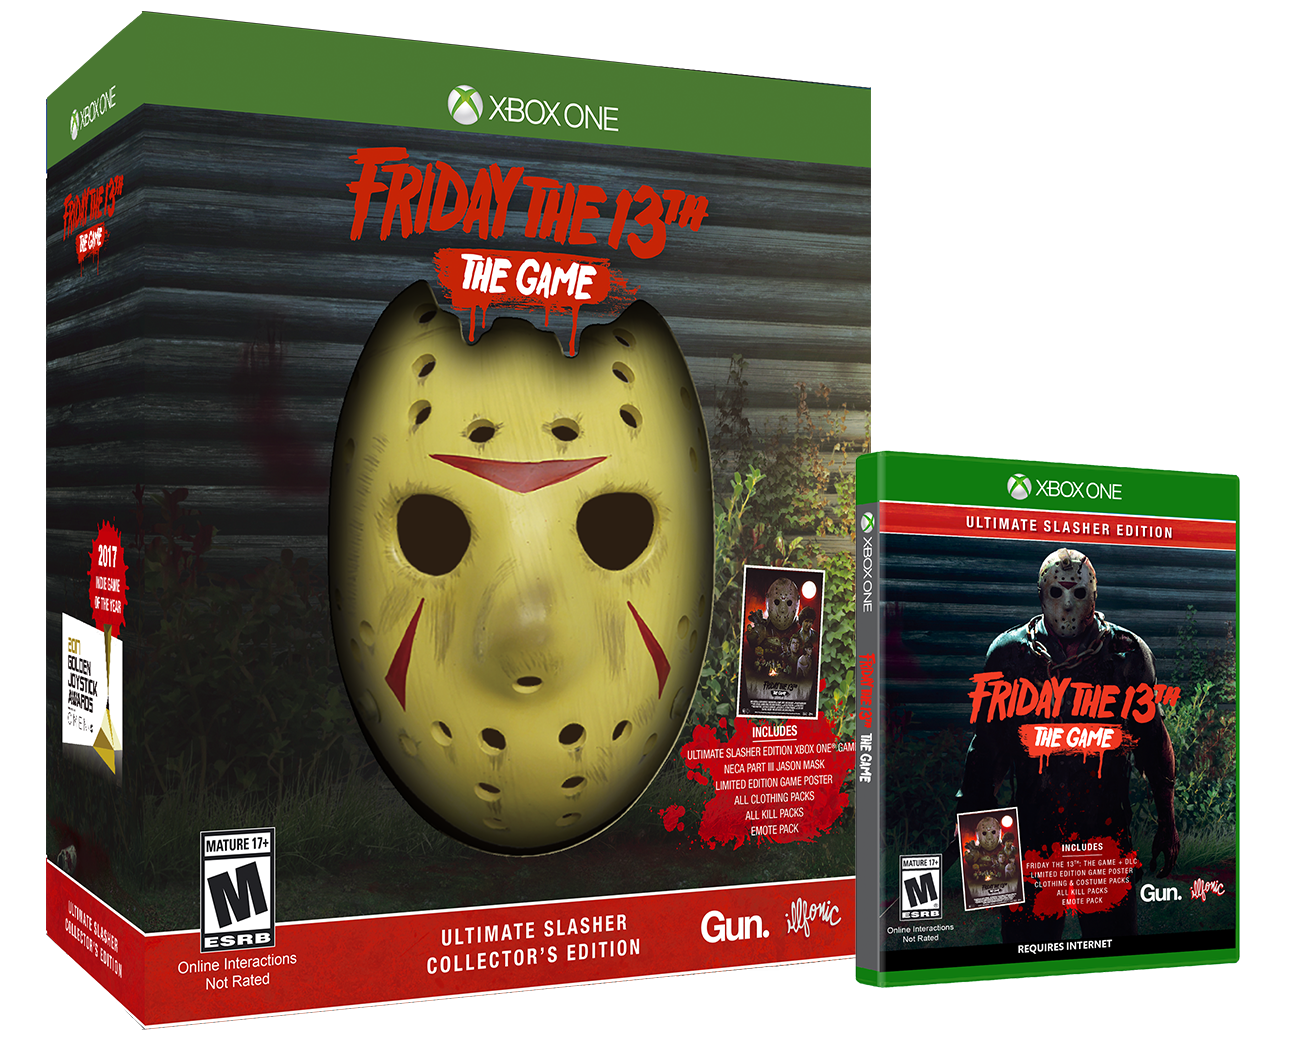 F13 USCE XBO Group - Must-Own: FRIDAY THE 13TH: THE GAME Ultimate Slasher Collector's Edition